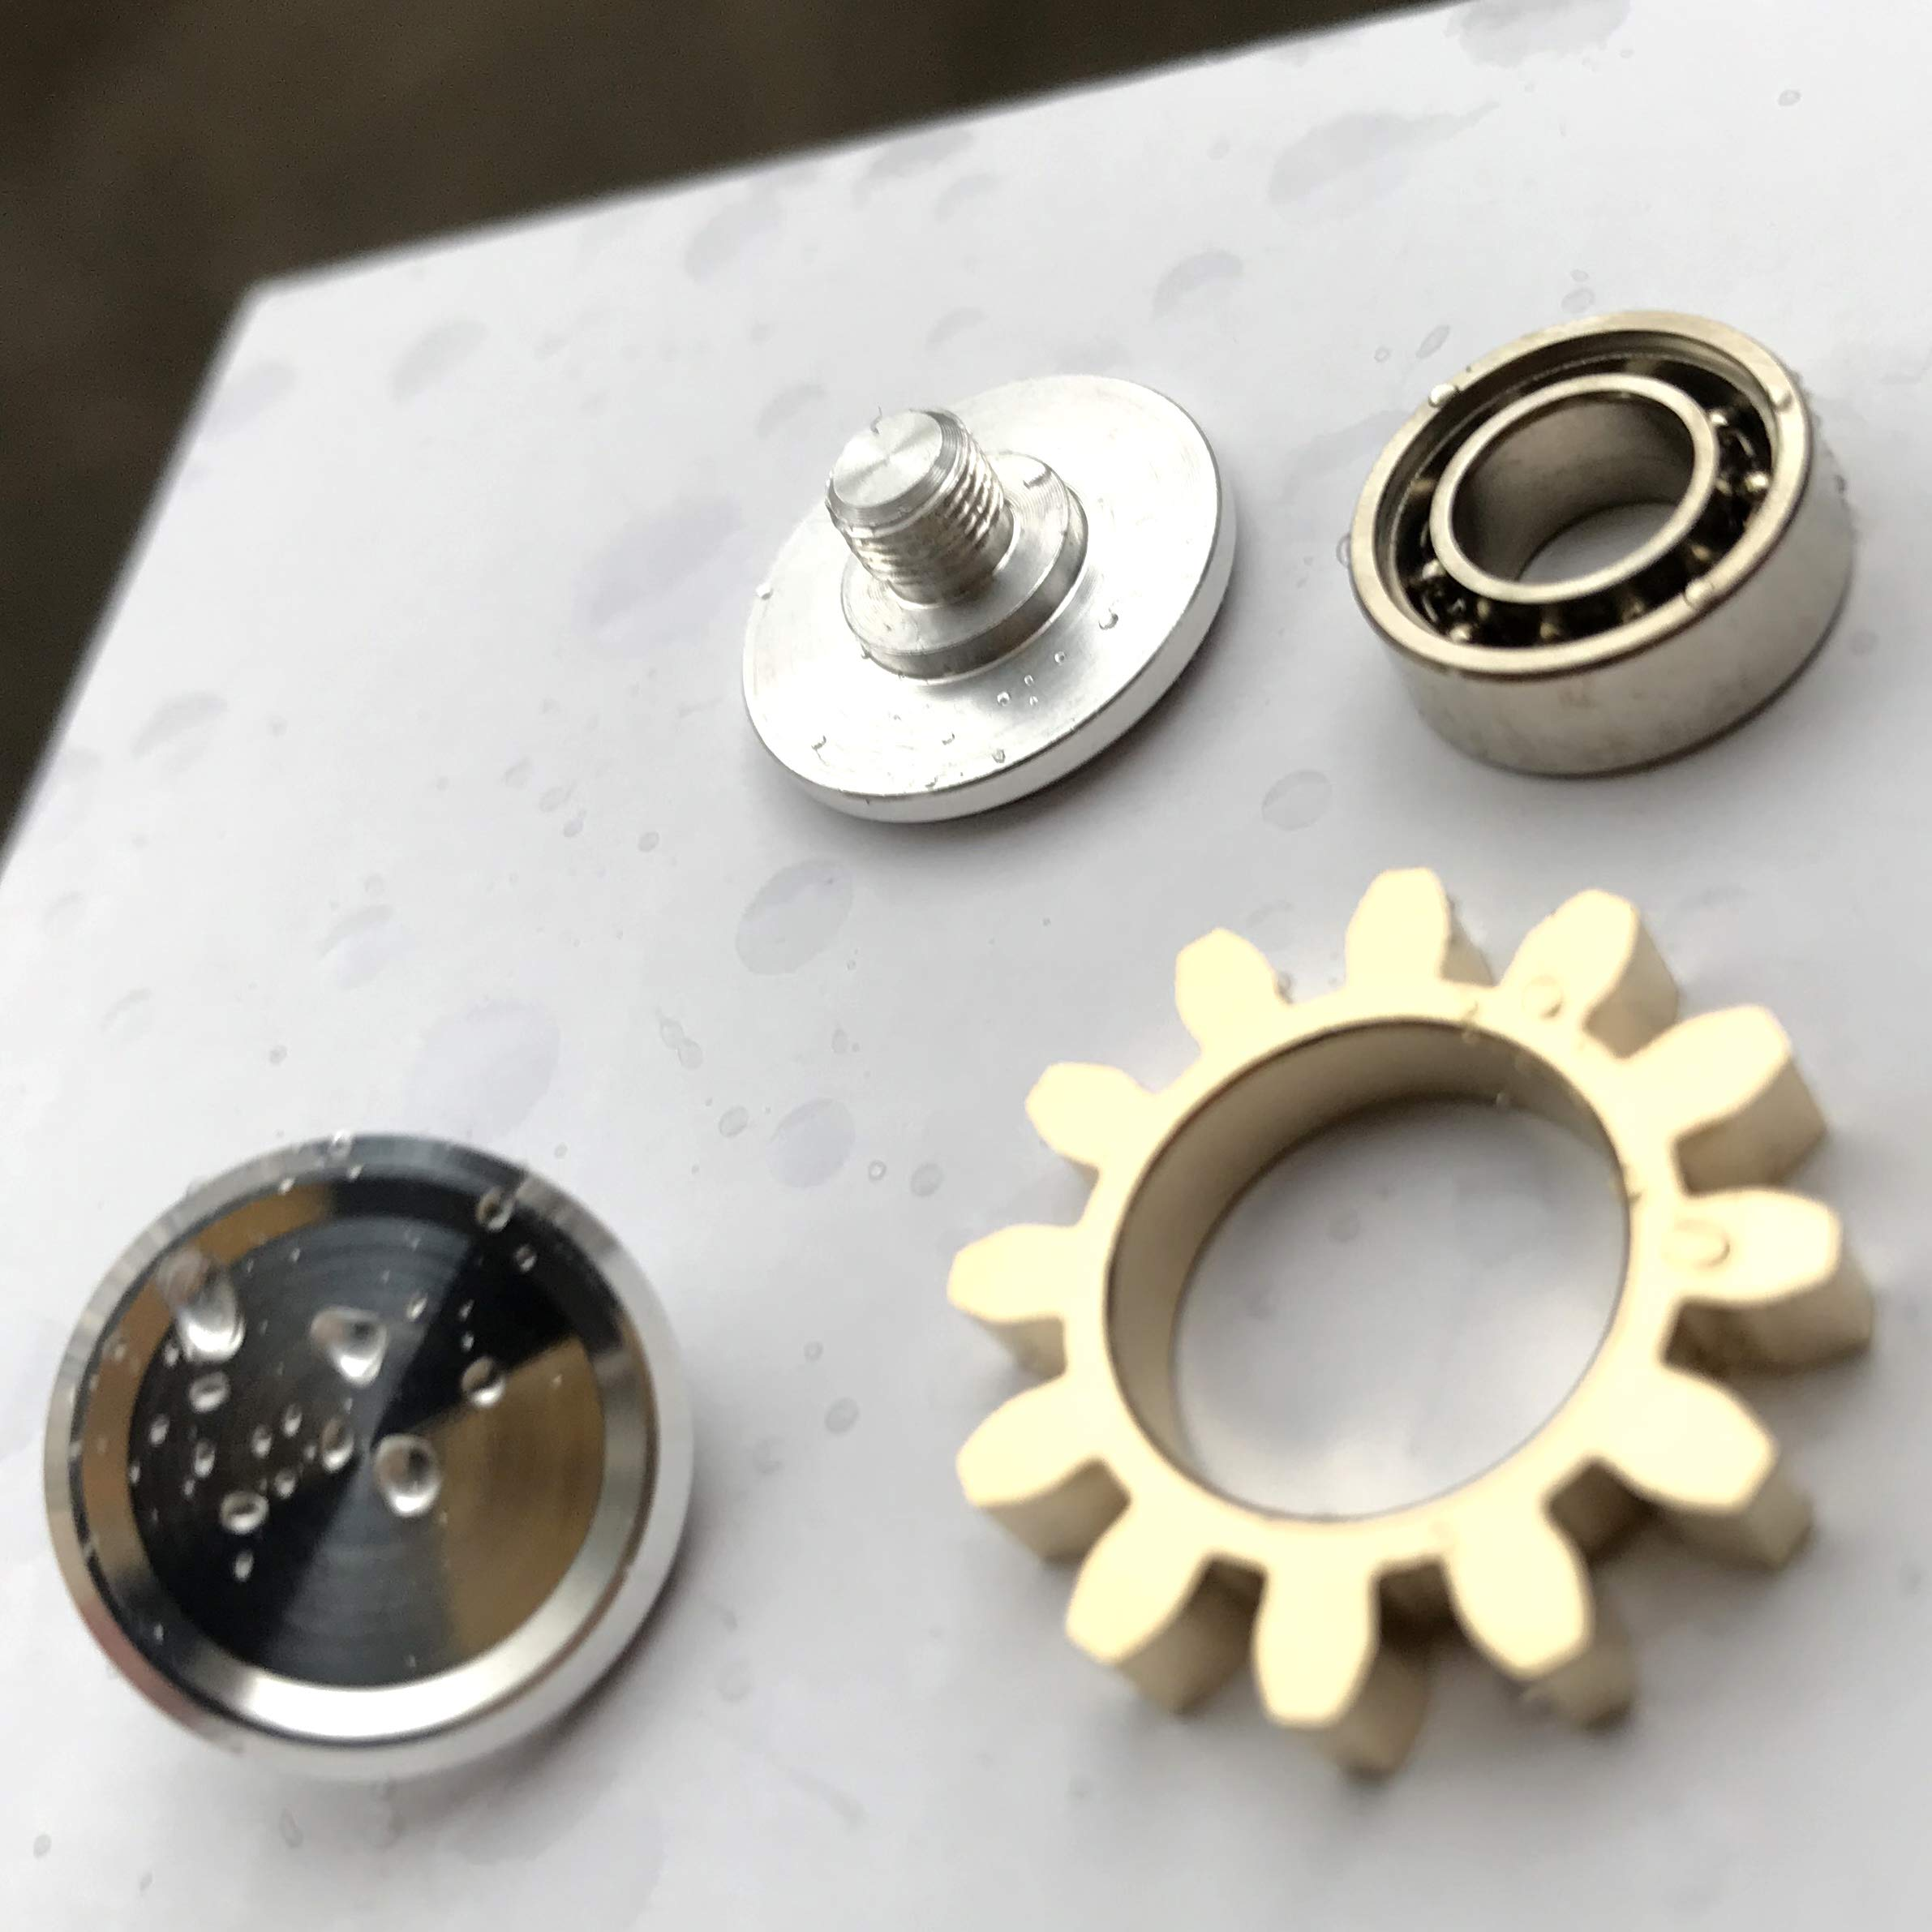 FREELOVE 9 Series Gear Design Pure Copper Brass Fidget Spinner Toy Premium EDC Industrial Mechinery Disassemble R188 Silent Stainless Steel Bearing,3~5 Minutes (1 Series Gear Silver, 1 Series Gear) by FREELOVE (Image #5)